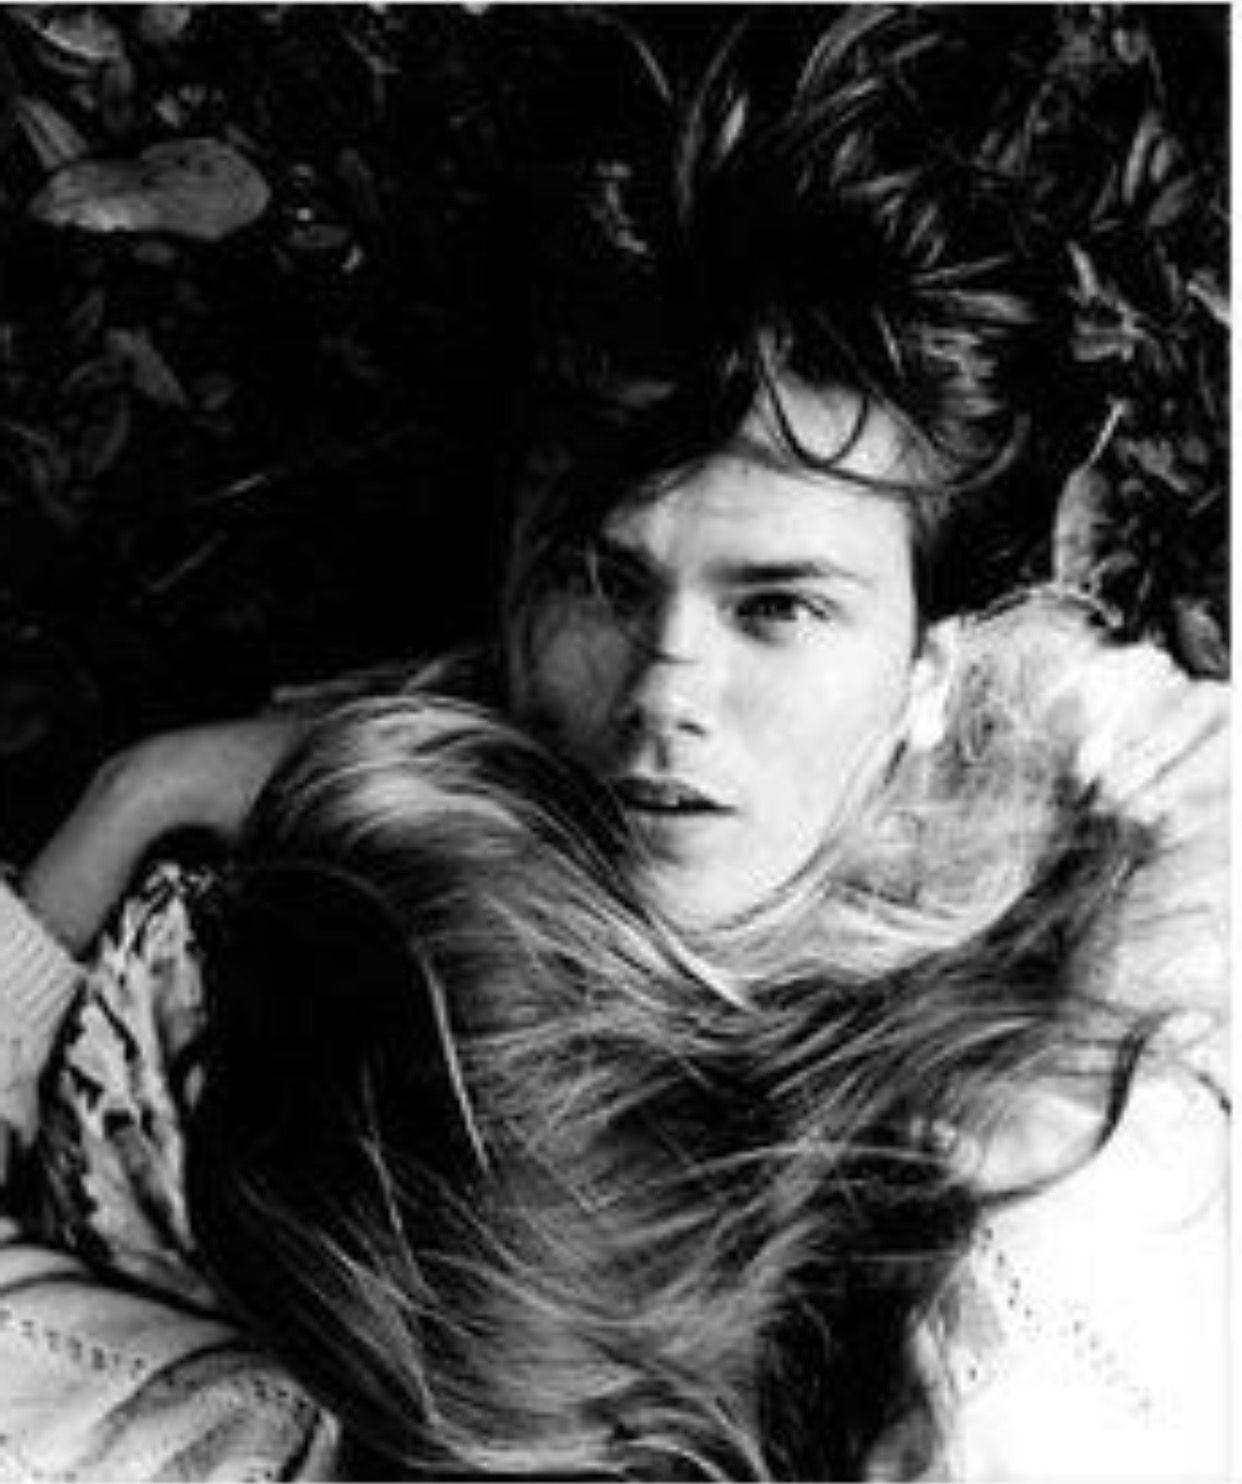 River Photo Shoot Ideas: River Phoenix And Susanne Solgot Were So Cute Together